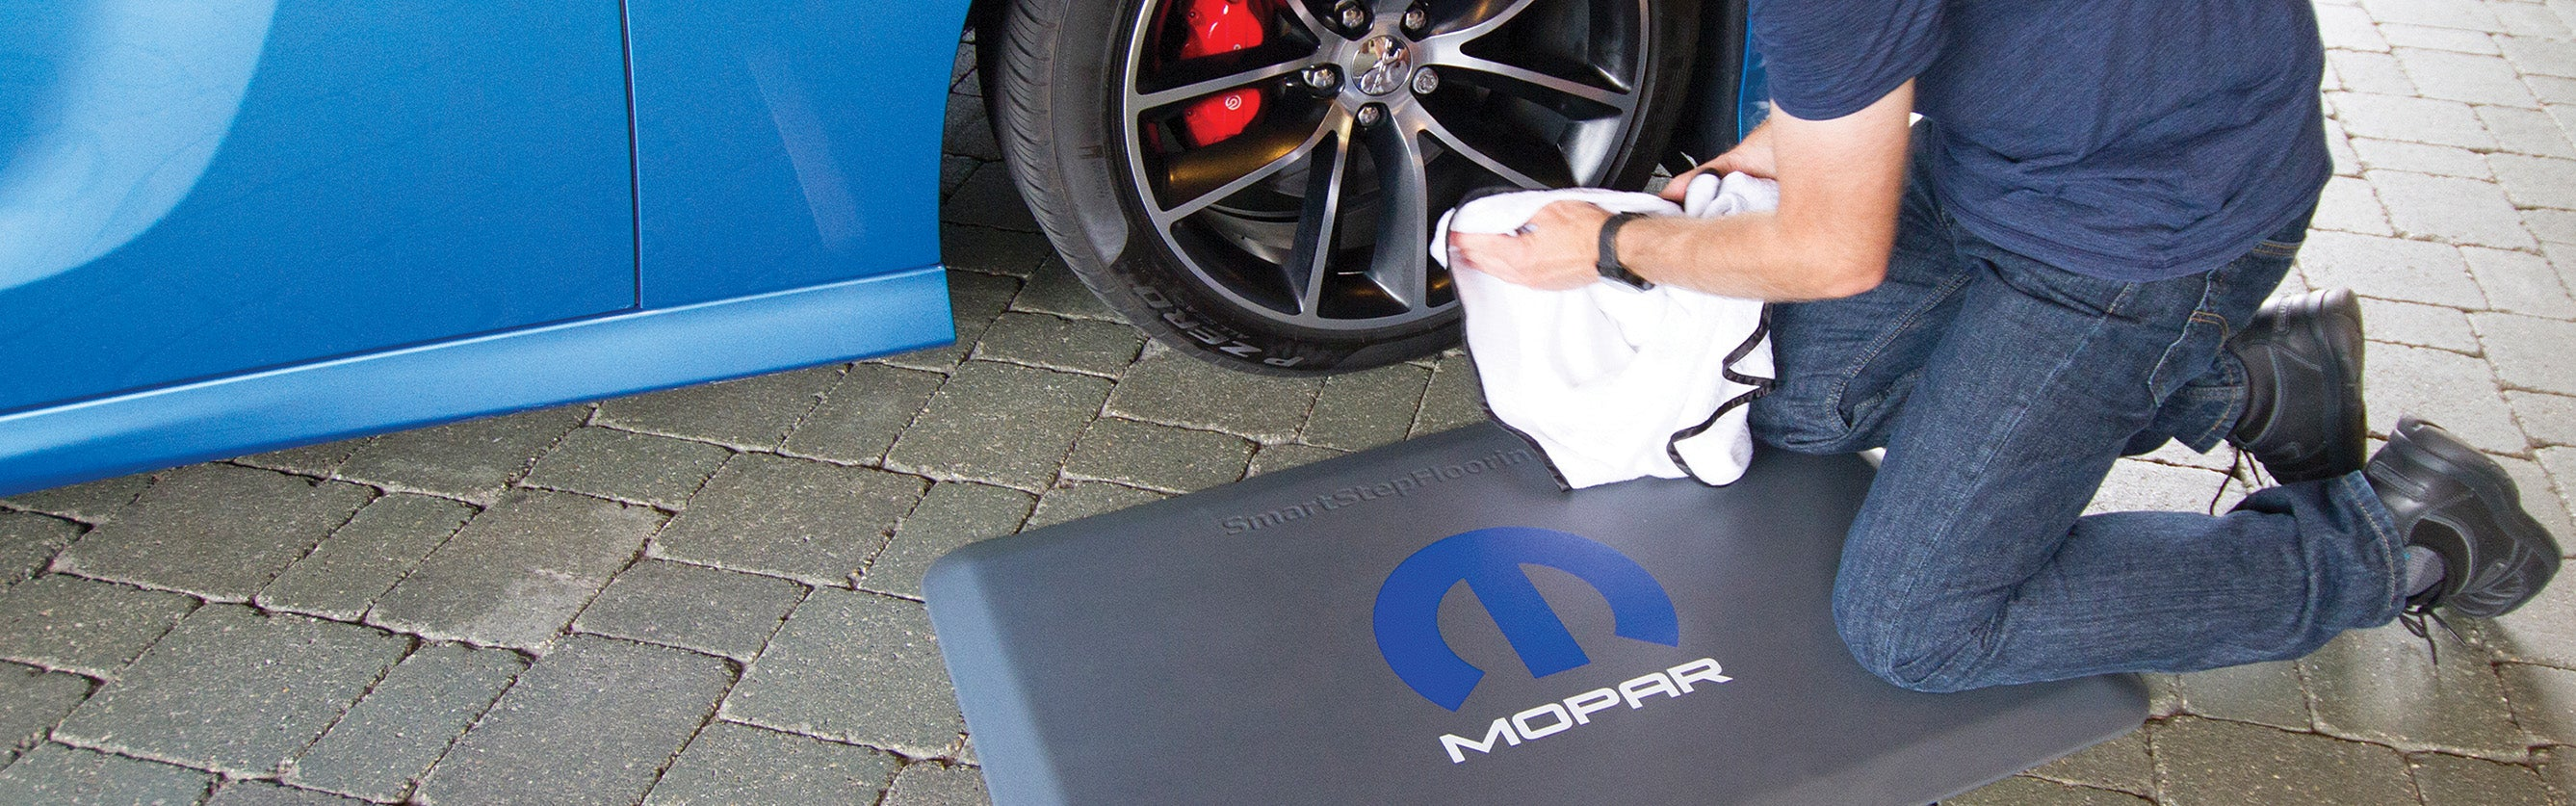 Mopar Logo Decal on Smart Step Premium Performance Mat